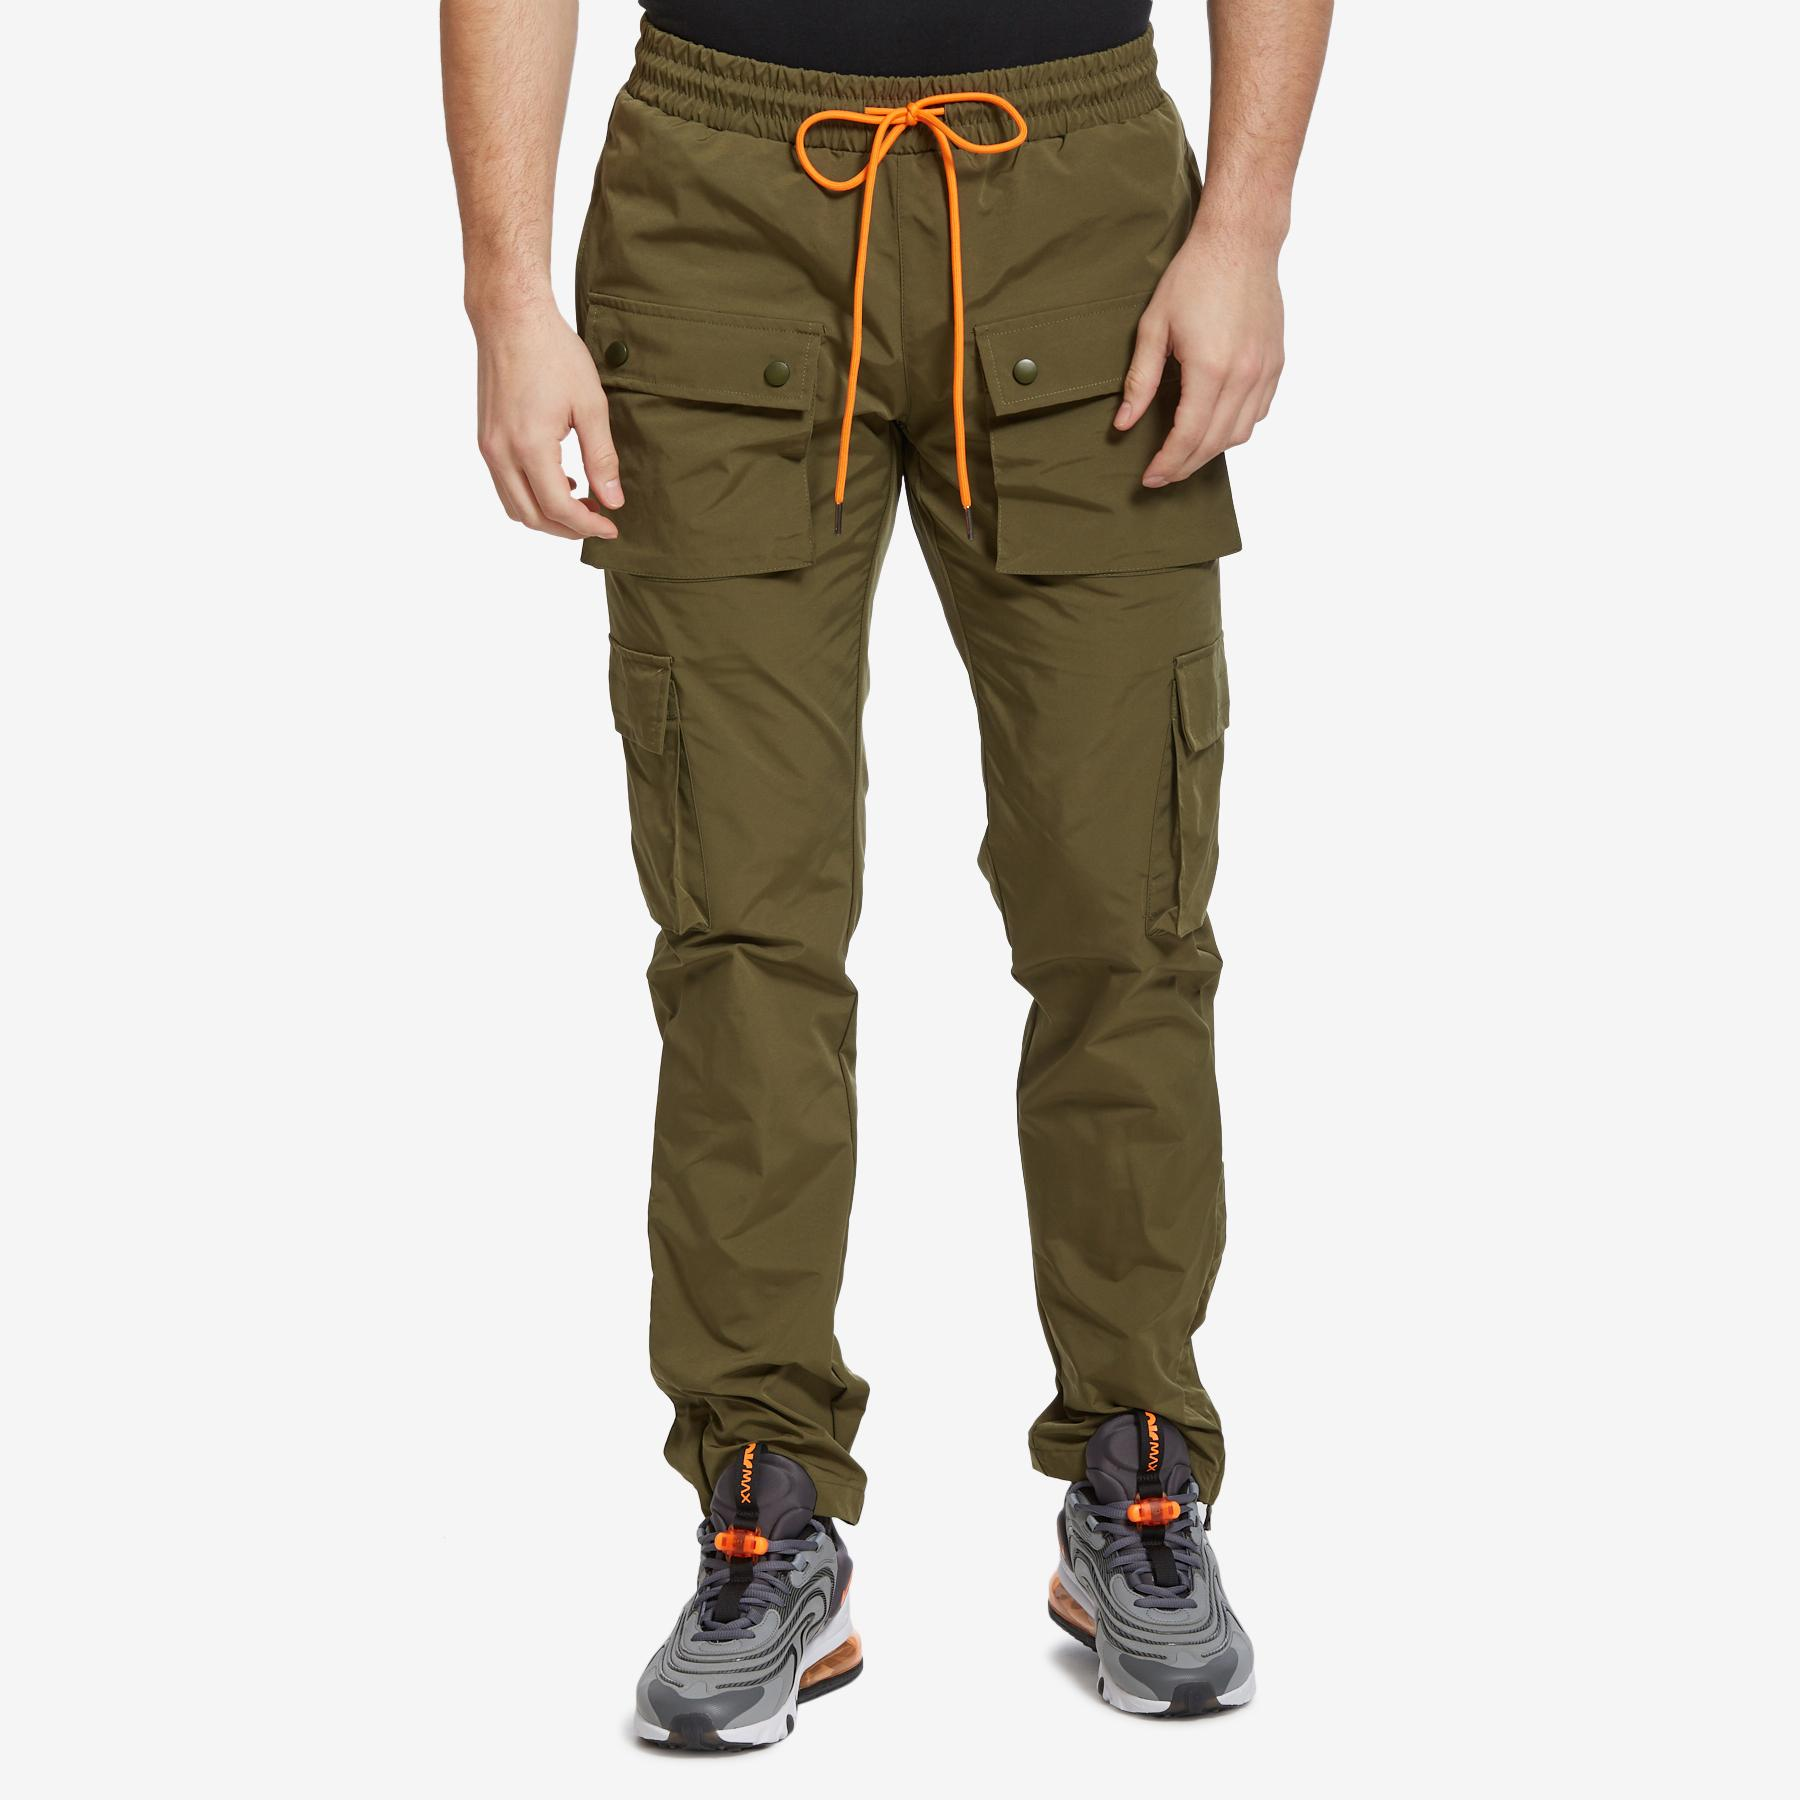 Men's Snap Cargo Pants